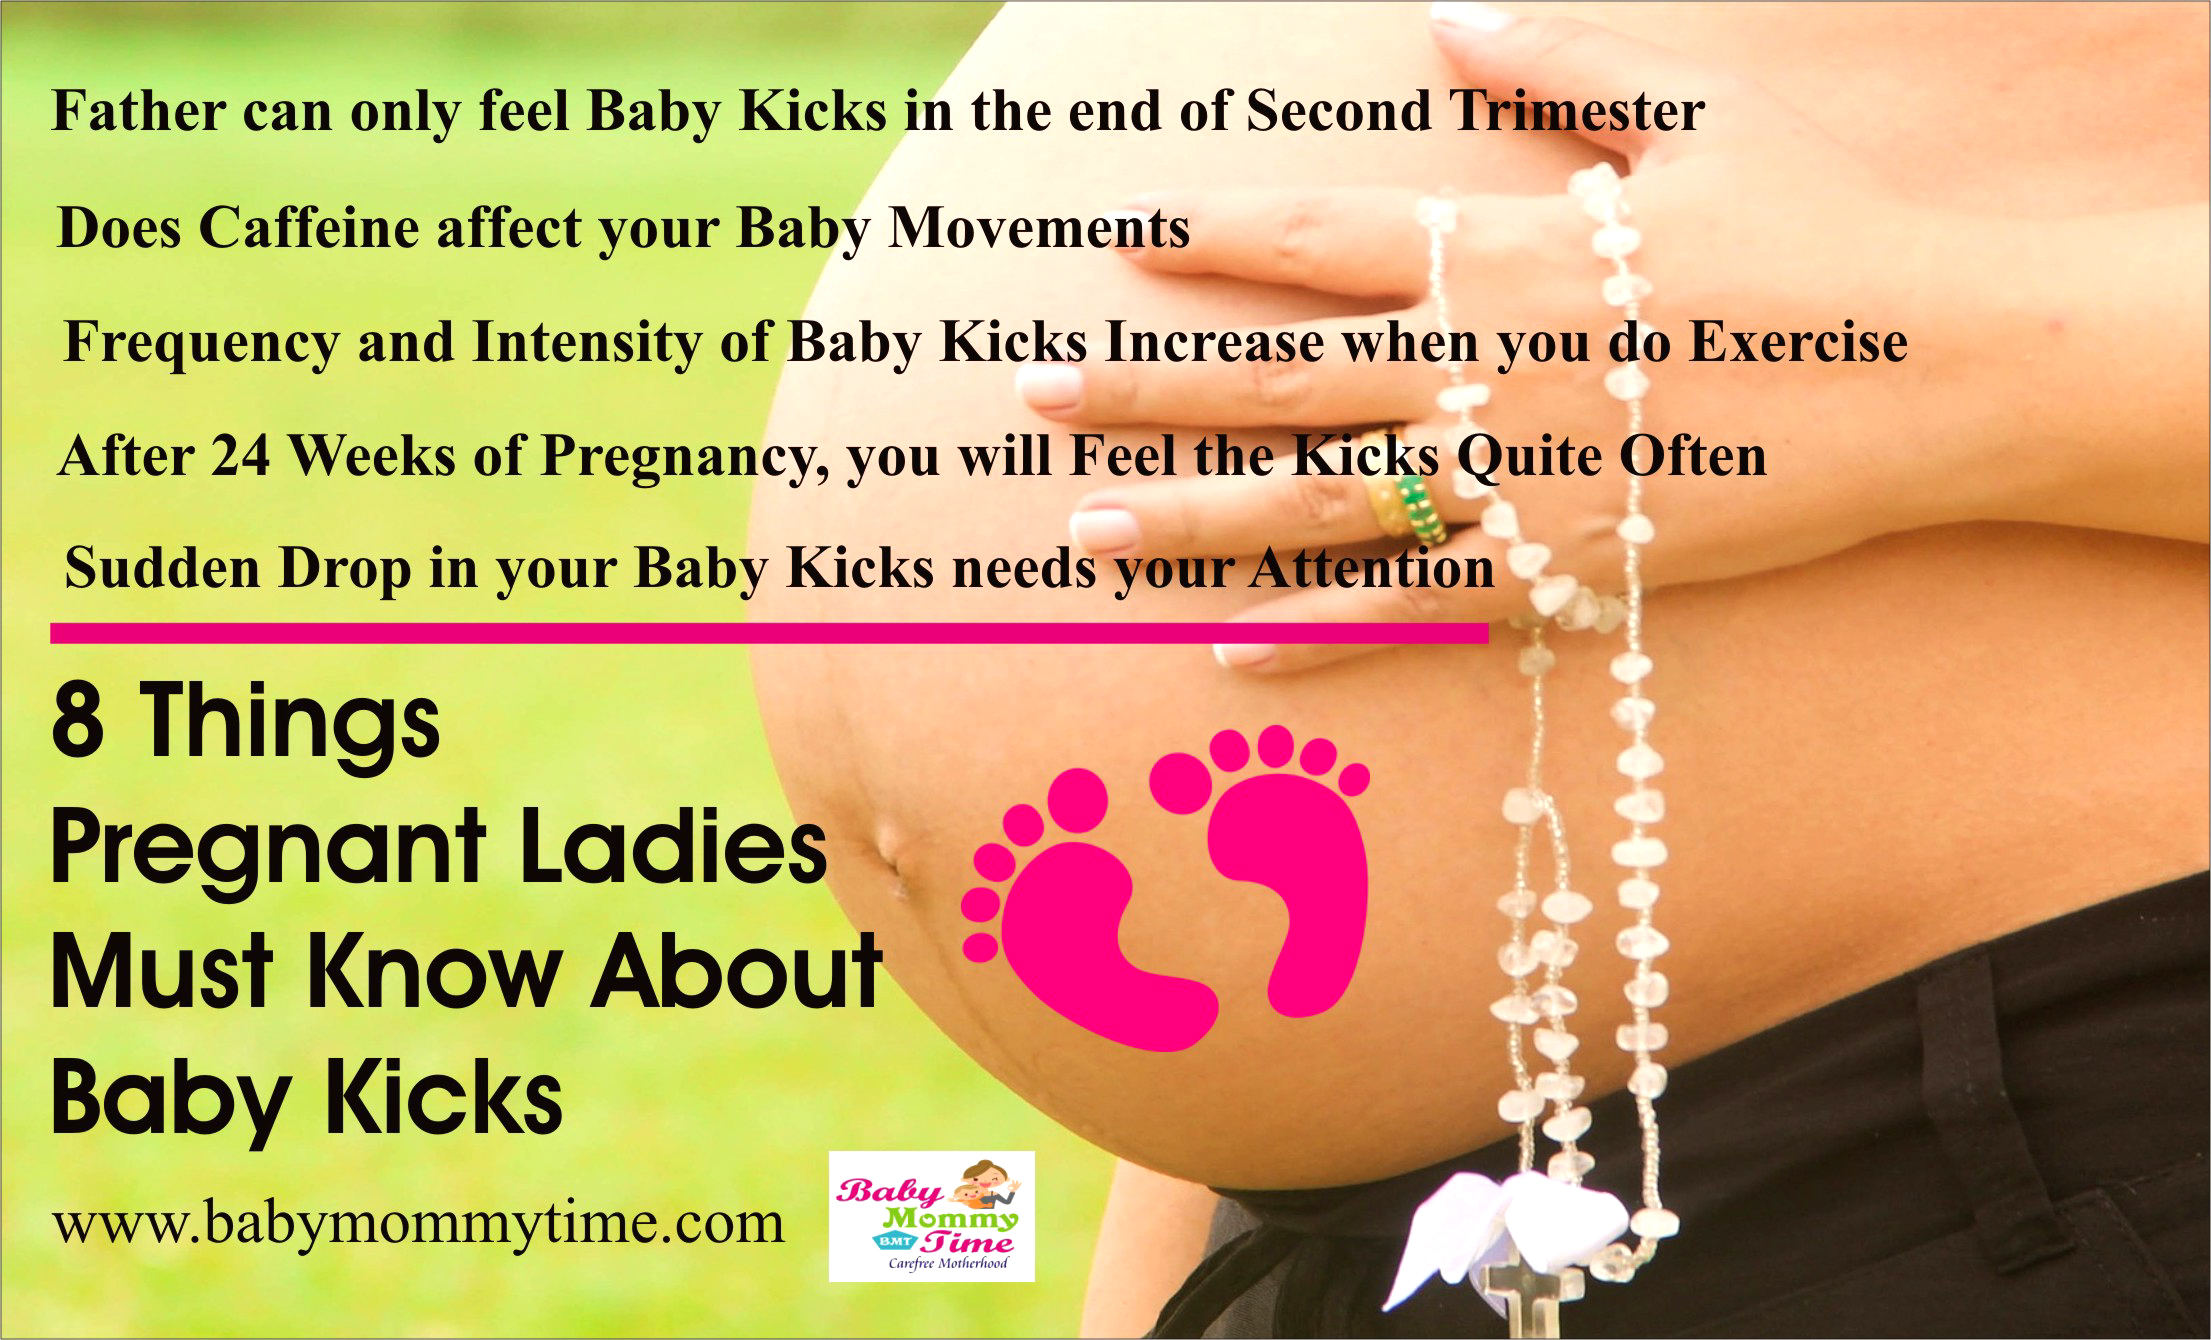 8 Things Pregnant Ladies Must Know About Baby Kicks